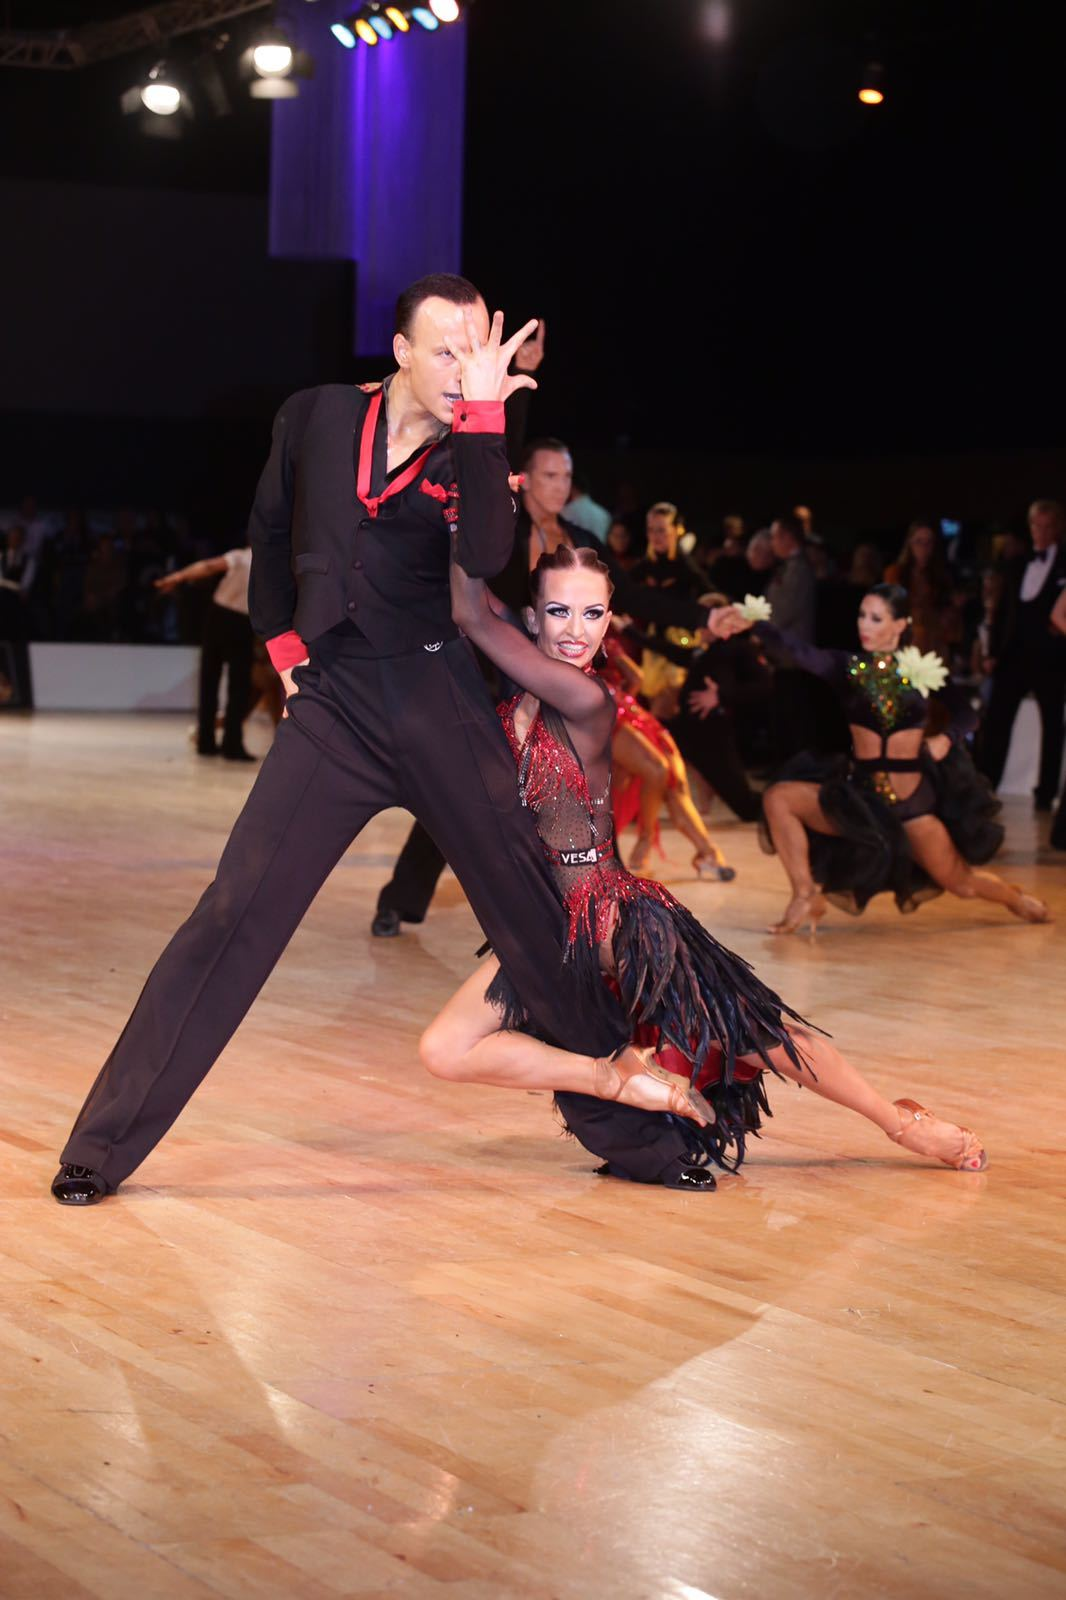 Dance Lessons Ballroom and Latin Competitions and Pro-Am